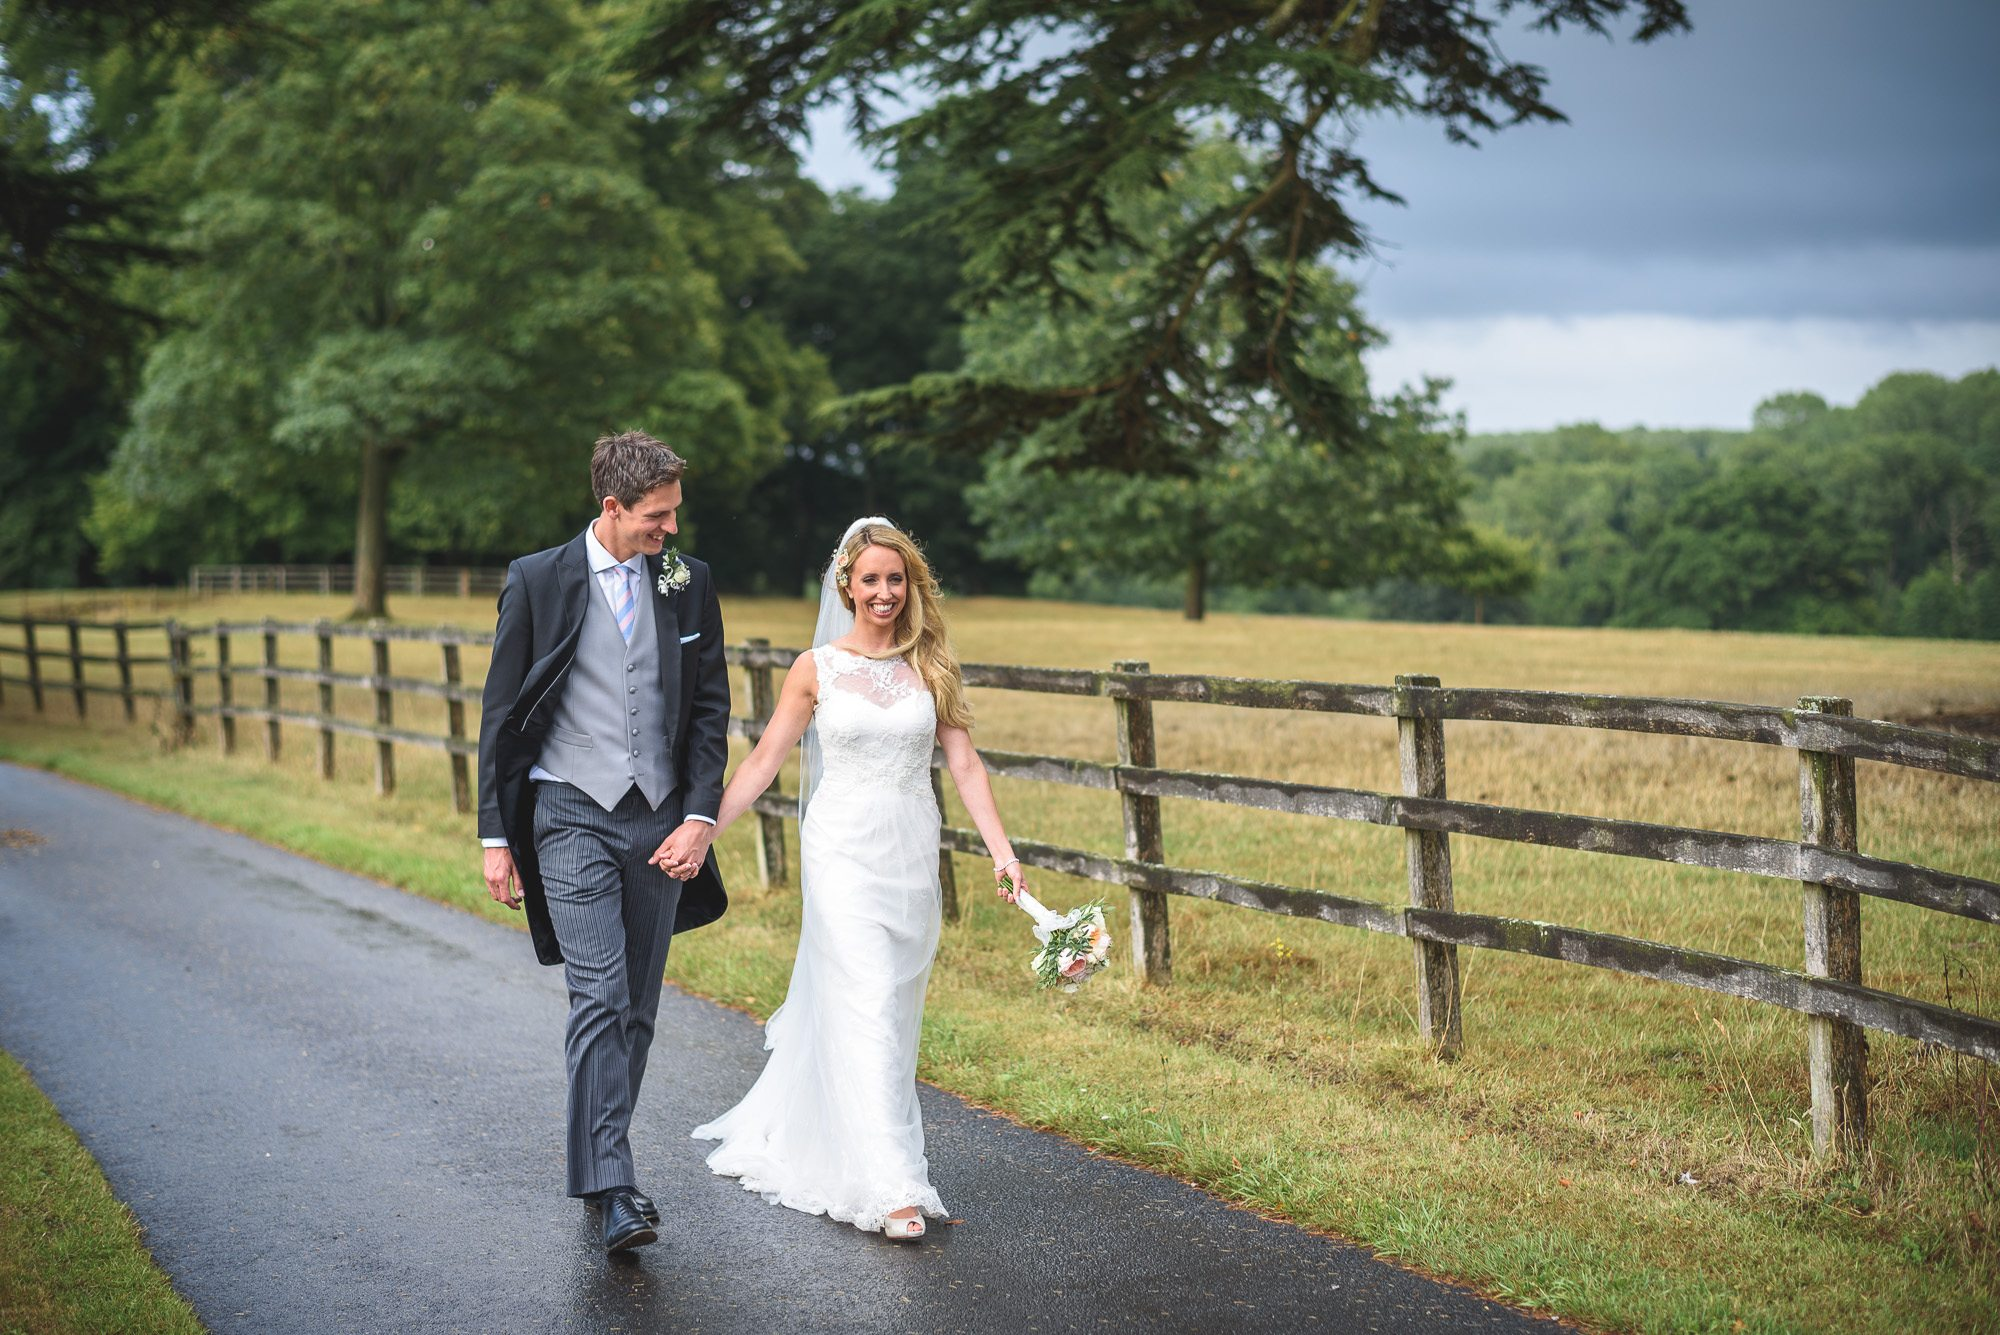 Suzanne-and-Wayne-Wasing-Park-wedding-photography-146-of-175